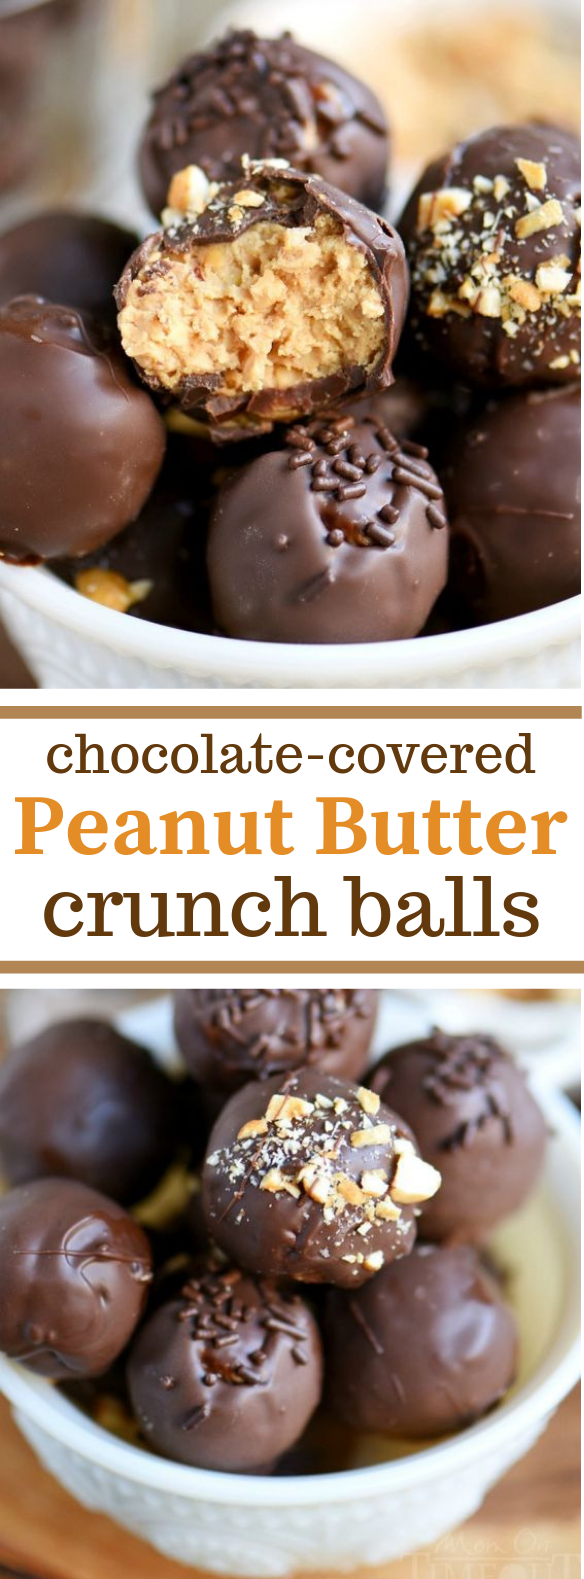 CHOCOLATE COVERED PEANUT BUTTER CRUNCH BALLS #Chocolate #Peanut